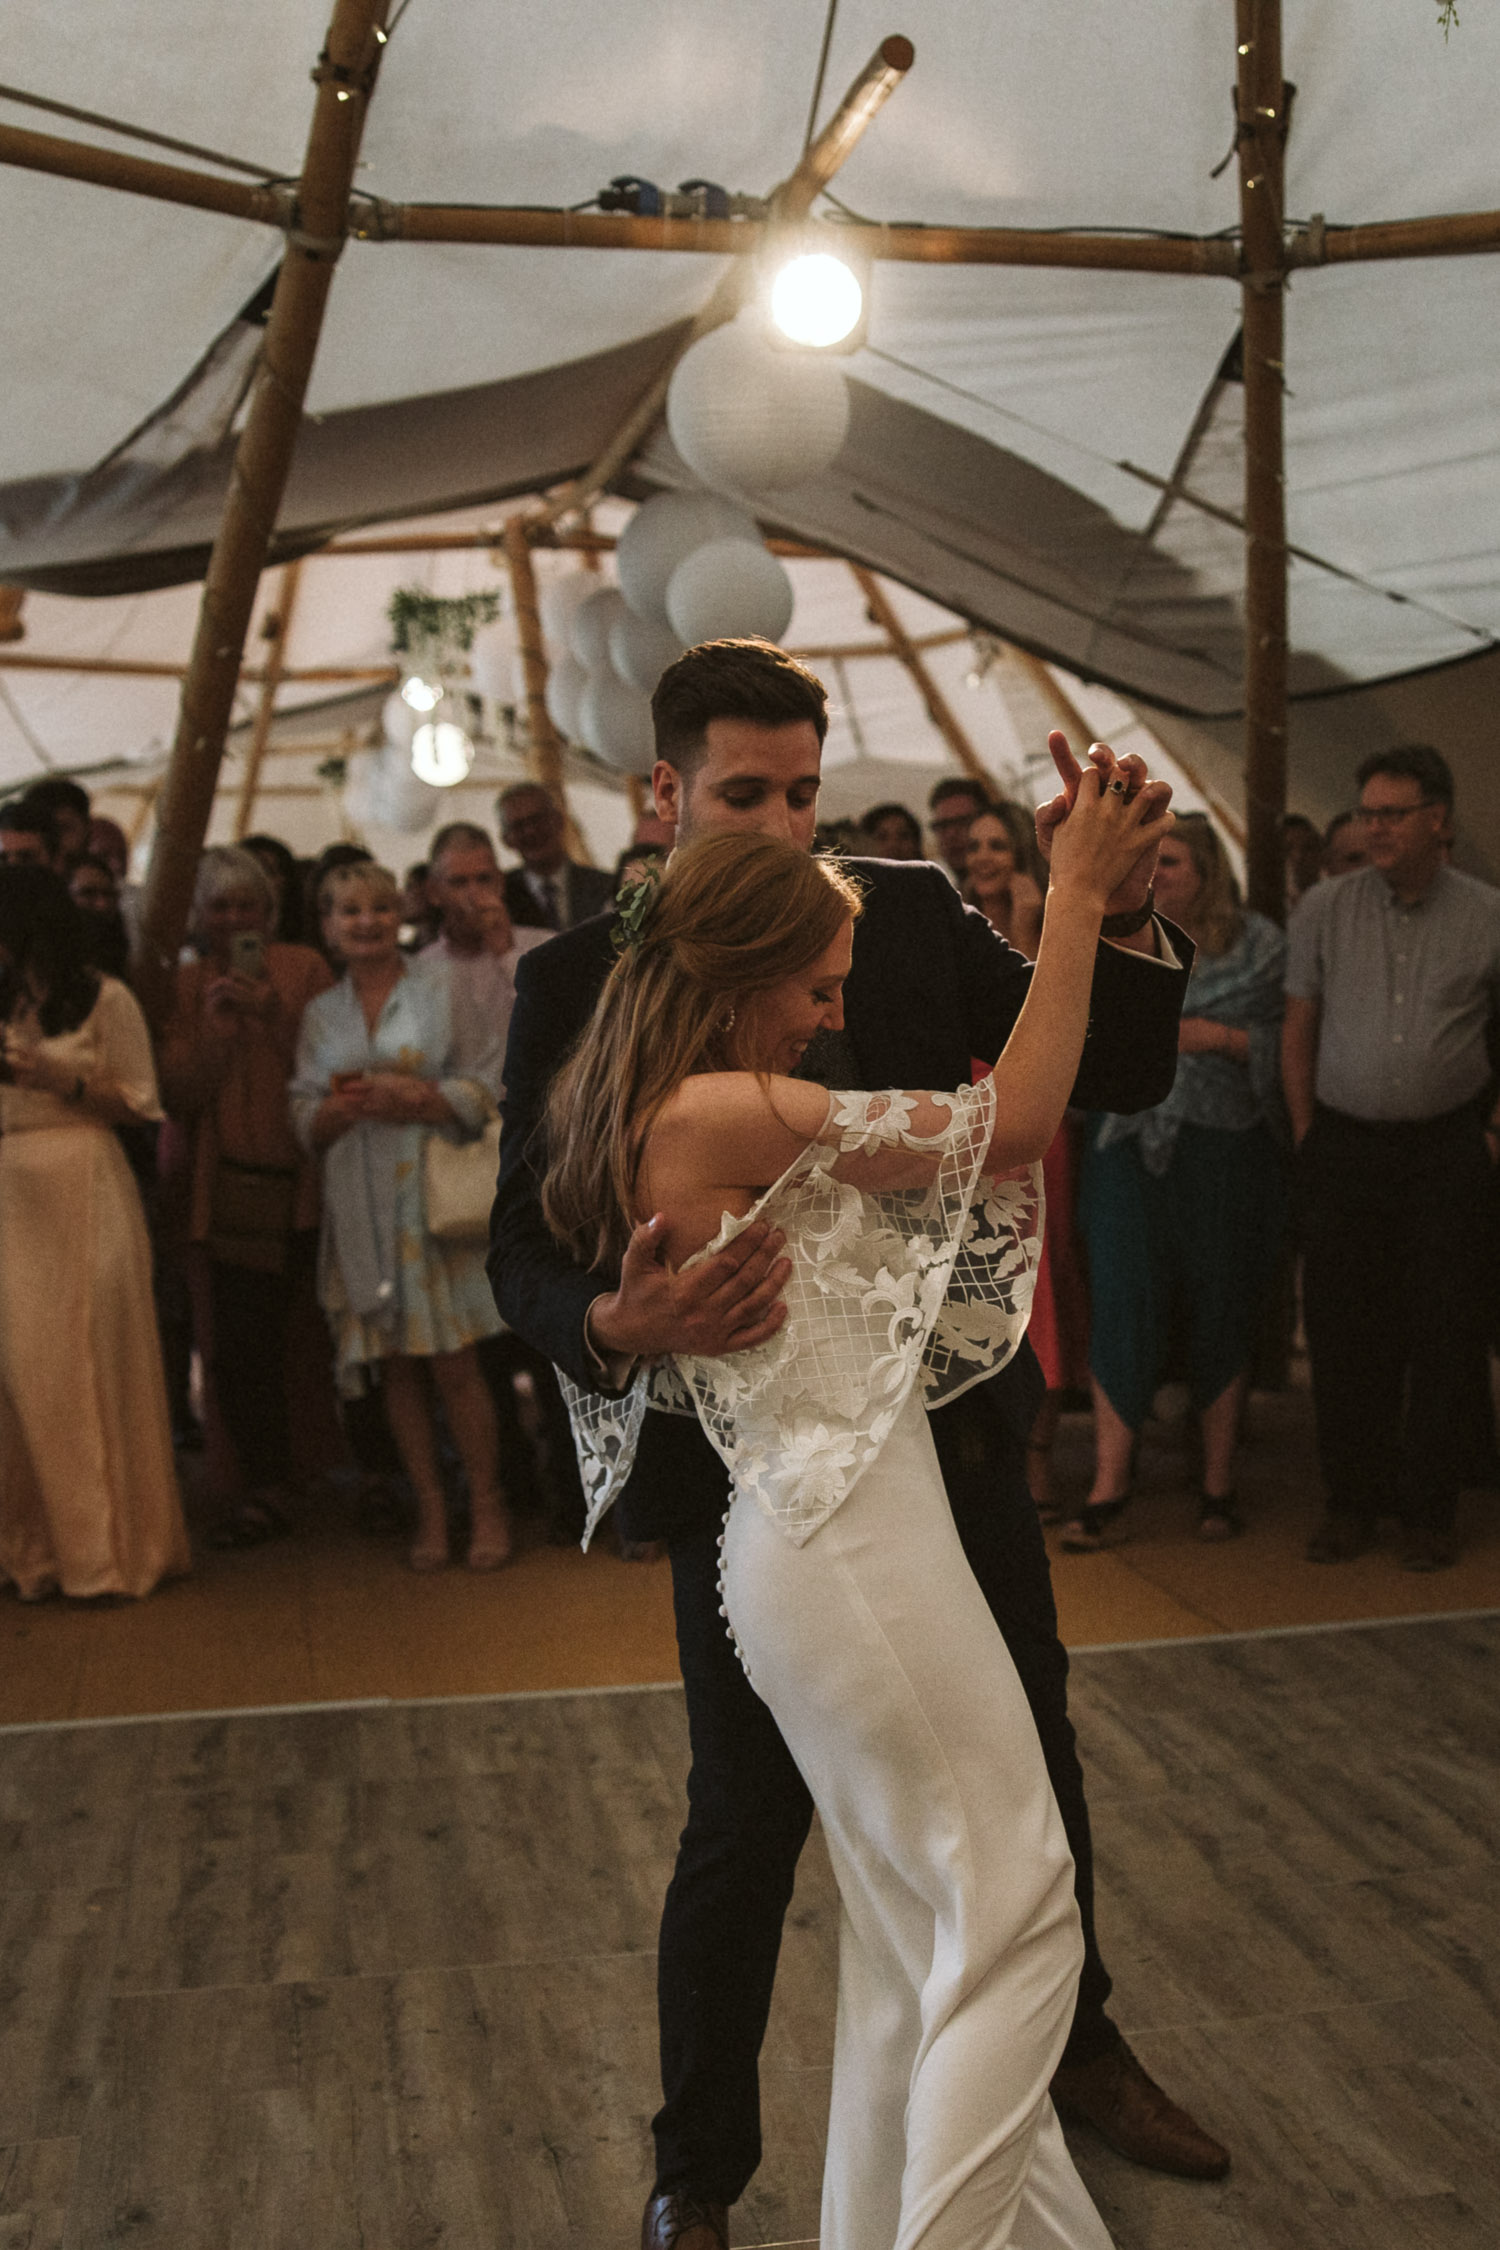 the couples dance moves during the first dance